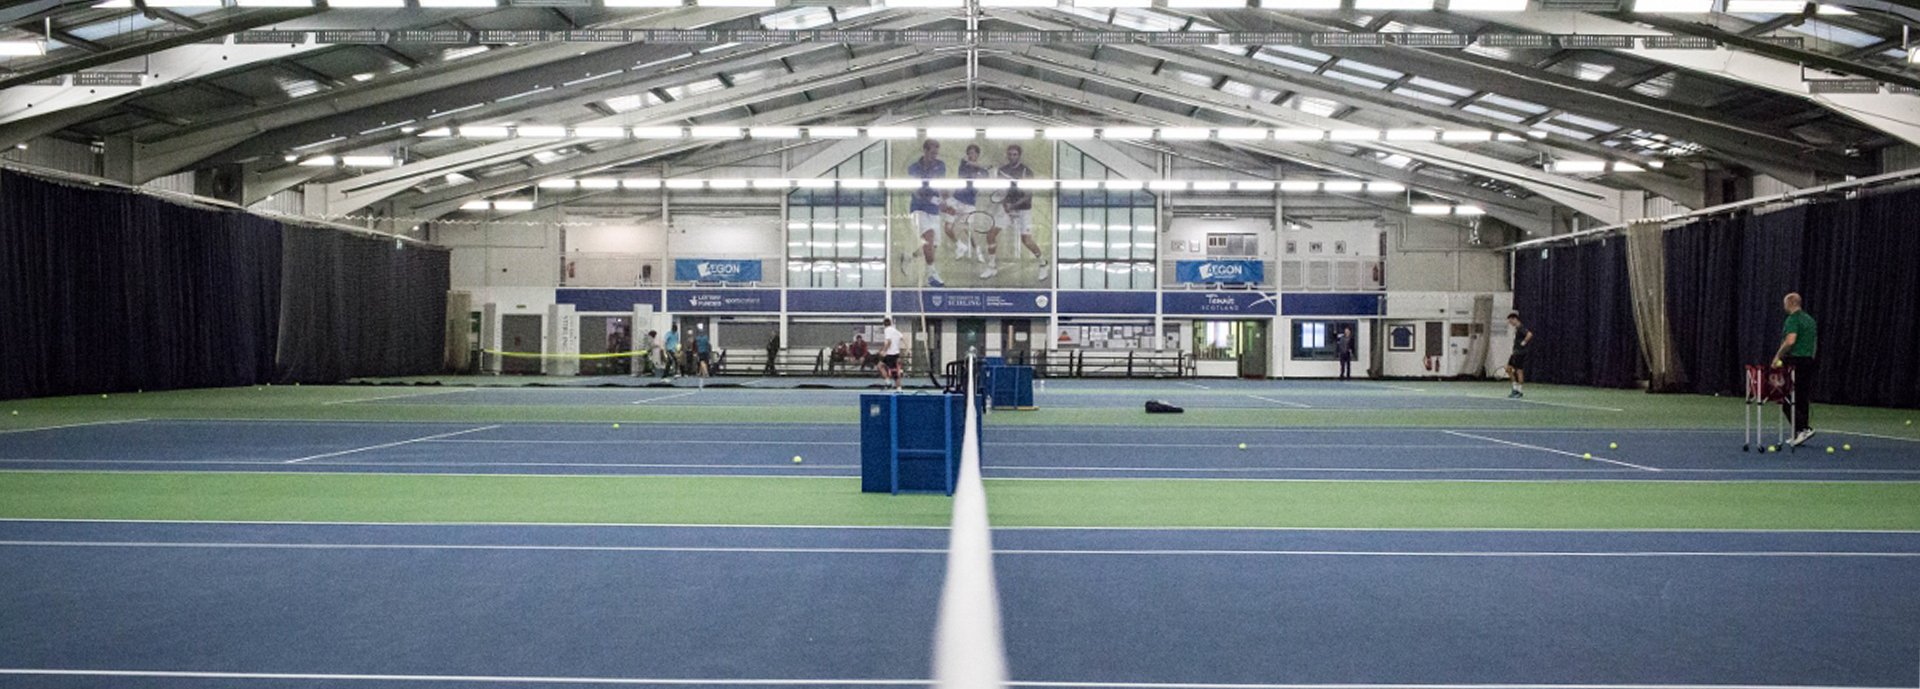 University of Stirling's tennis hall